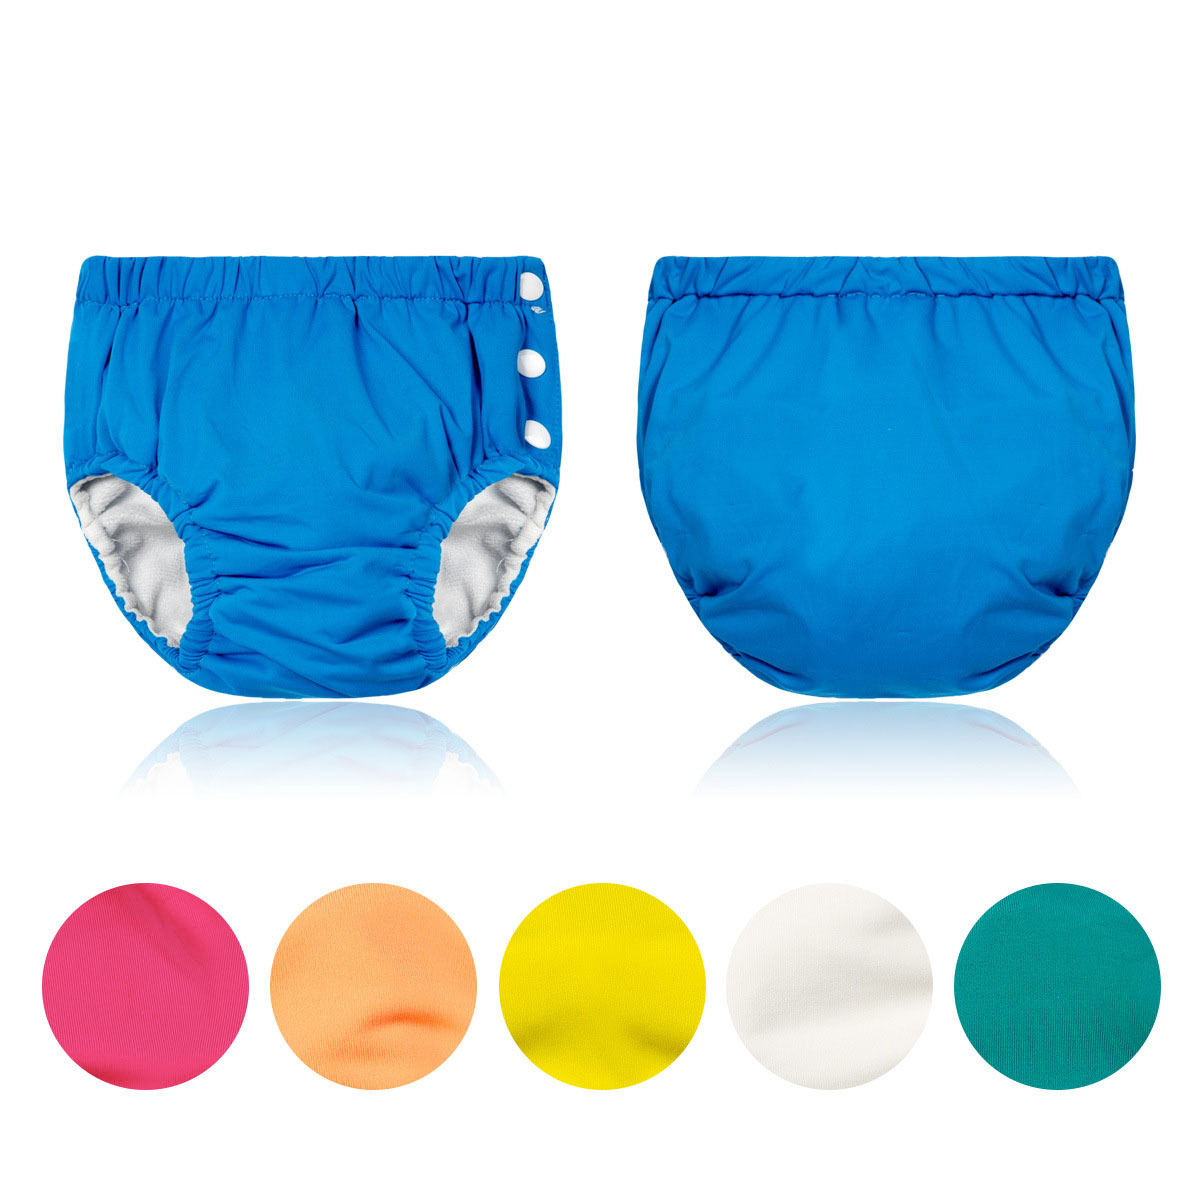 BABY'S Swimming Trunks Washable Pocket Urine Learn Swimming Trunks Kids Learning Swimming Trunks Swimming Pool Baby Diapers Swim